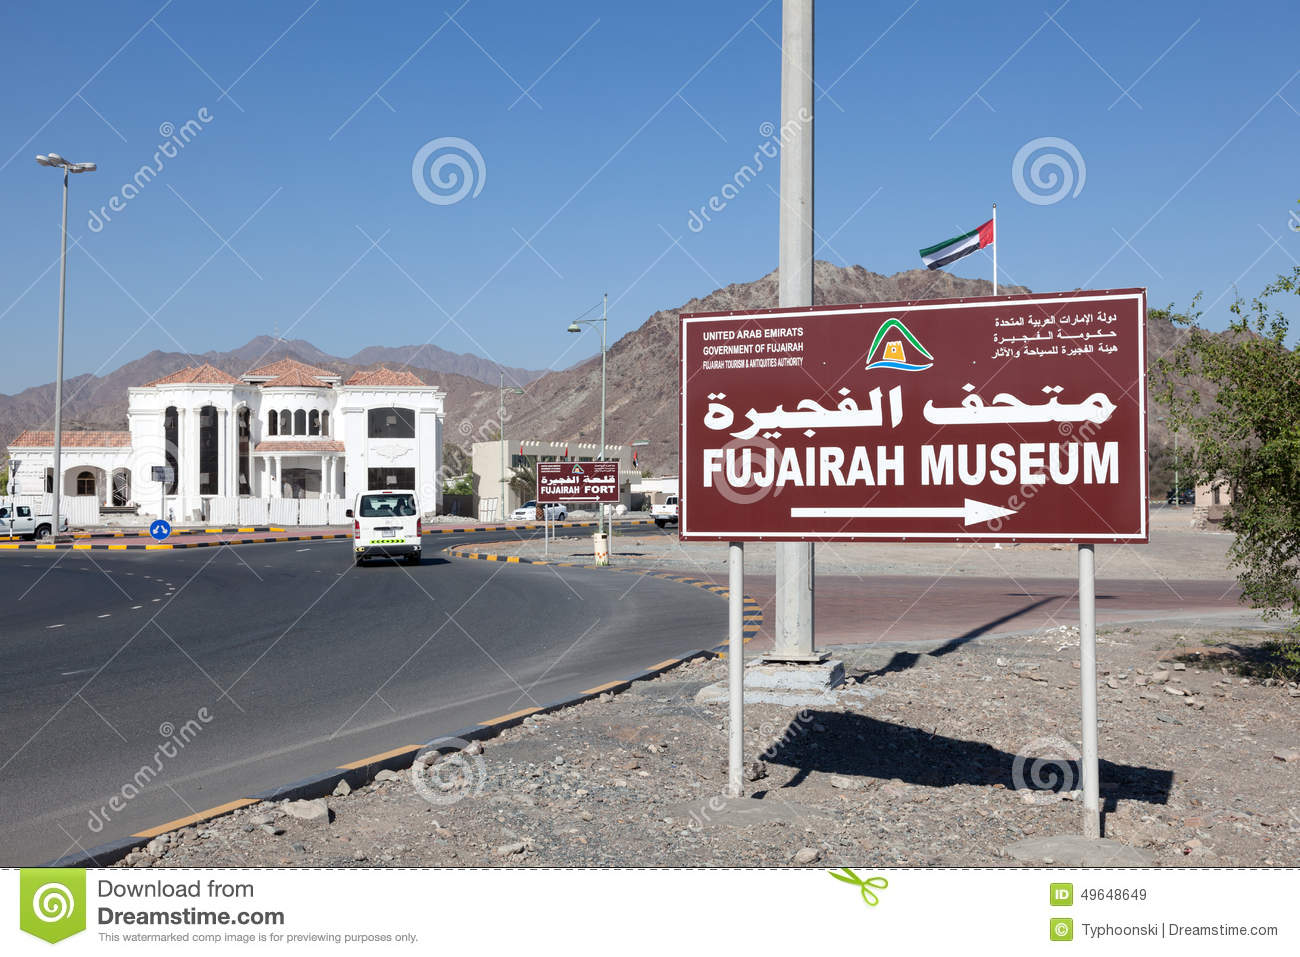 Fujairah Museum Fujairah City, Fujairah Museum Direction Road Sign Editorial Stock Image - Image ...